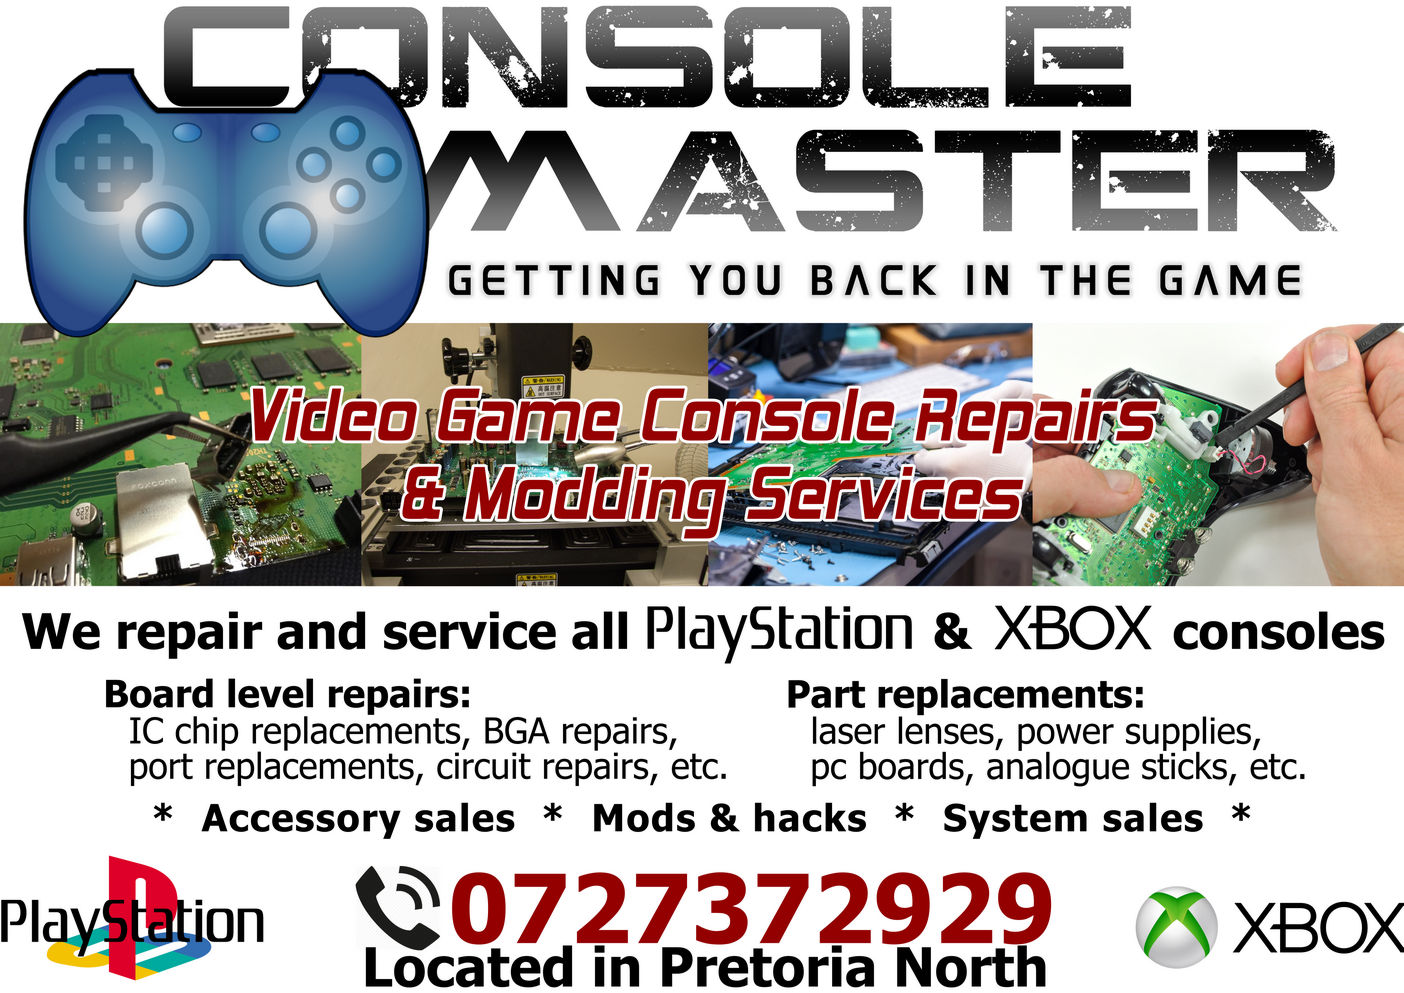 Video game console repairs - Playstation & Xbox - PS4, XBOX